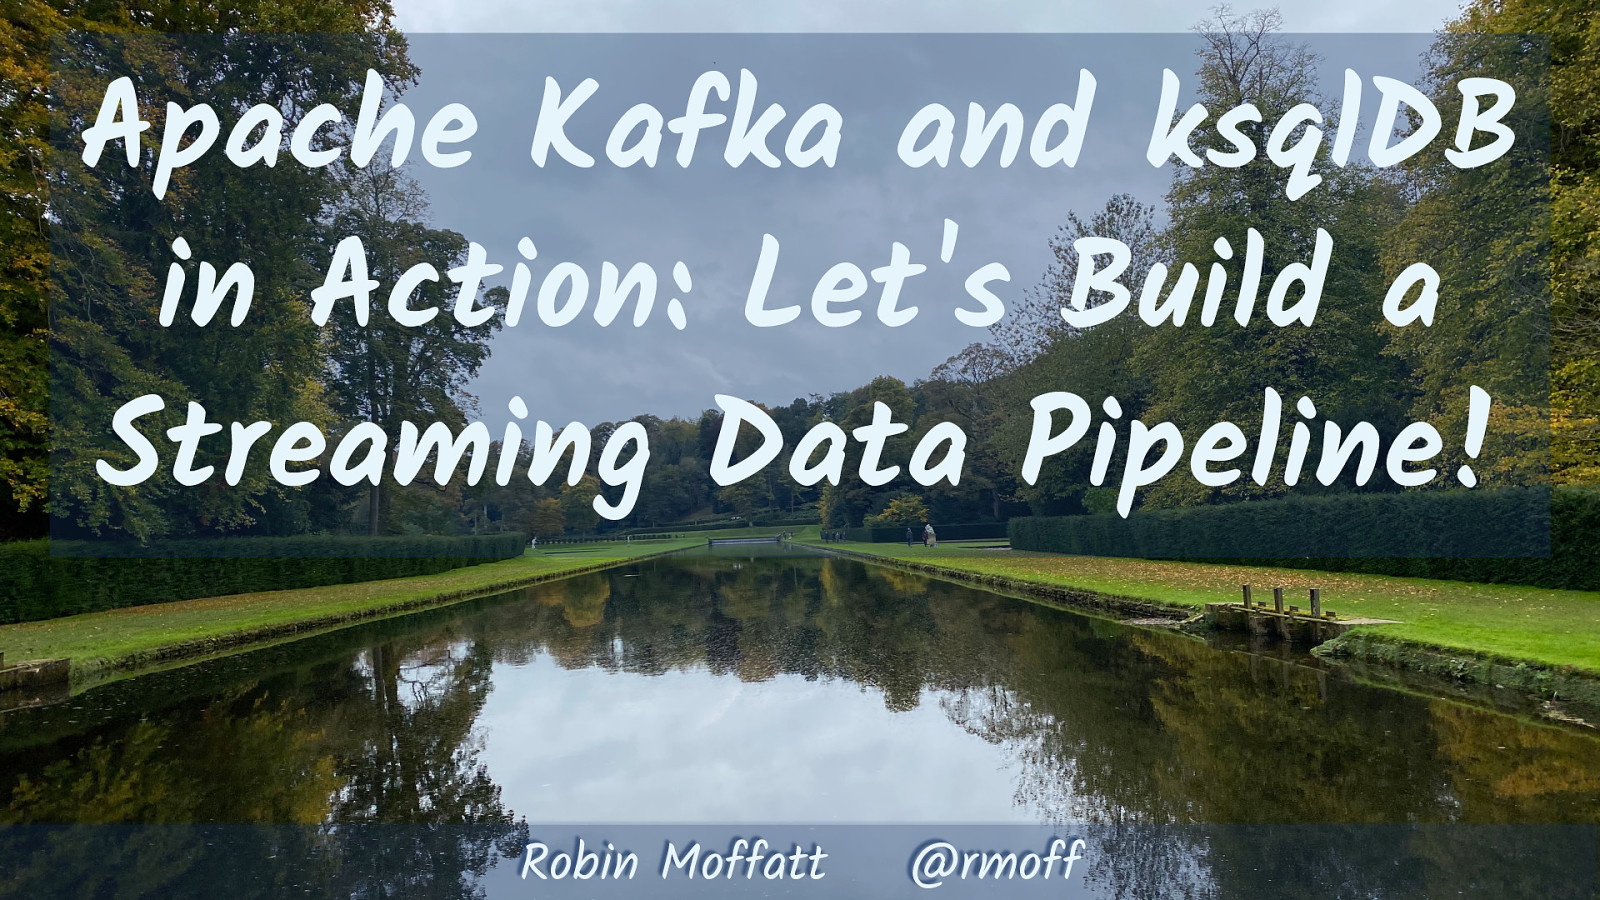 Apache Kafka and ksqlDB in Action: Let's Build a Streaming Data Pipeline! by Robin Moffatt